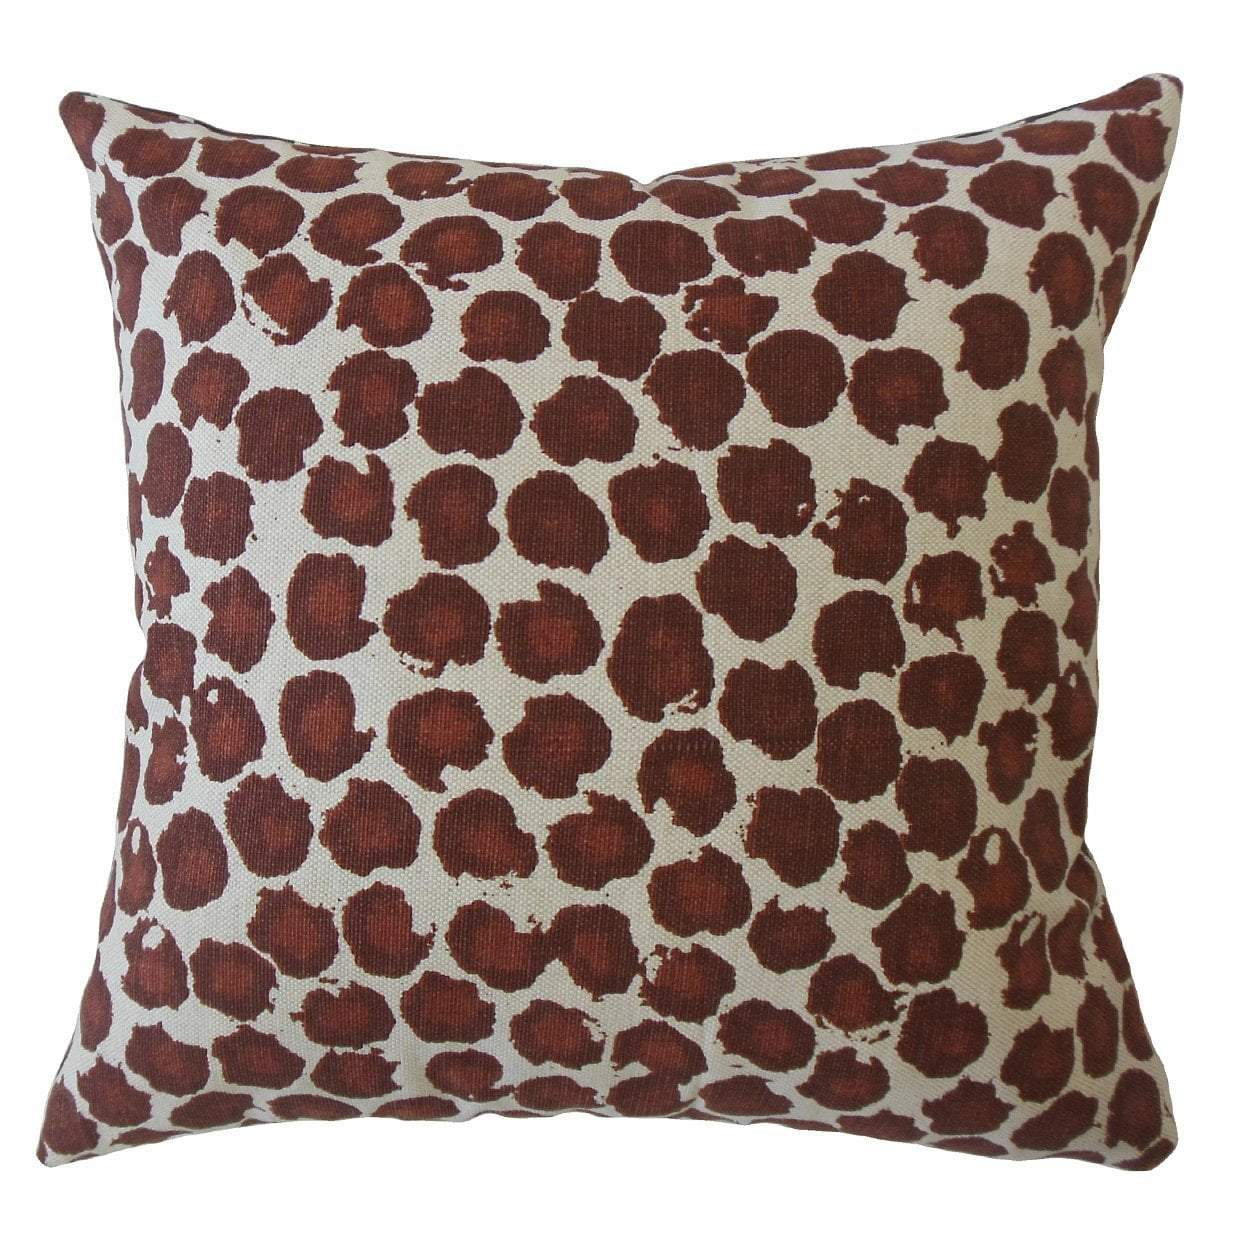 Brown Cotton Ikat Boho Throw Pillow Cover